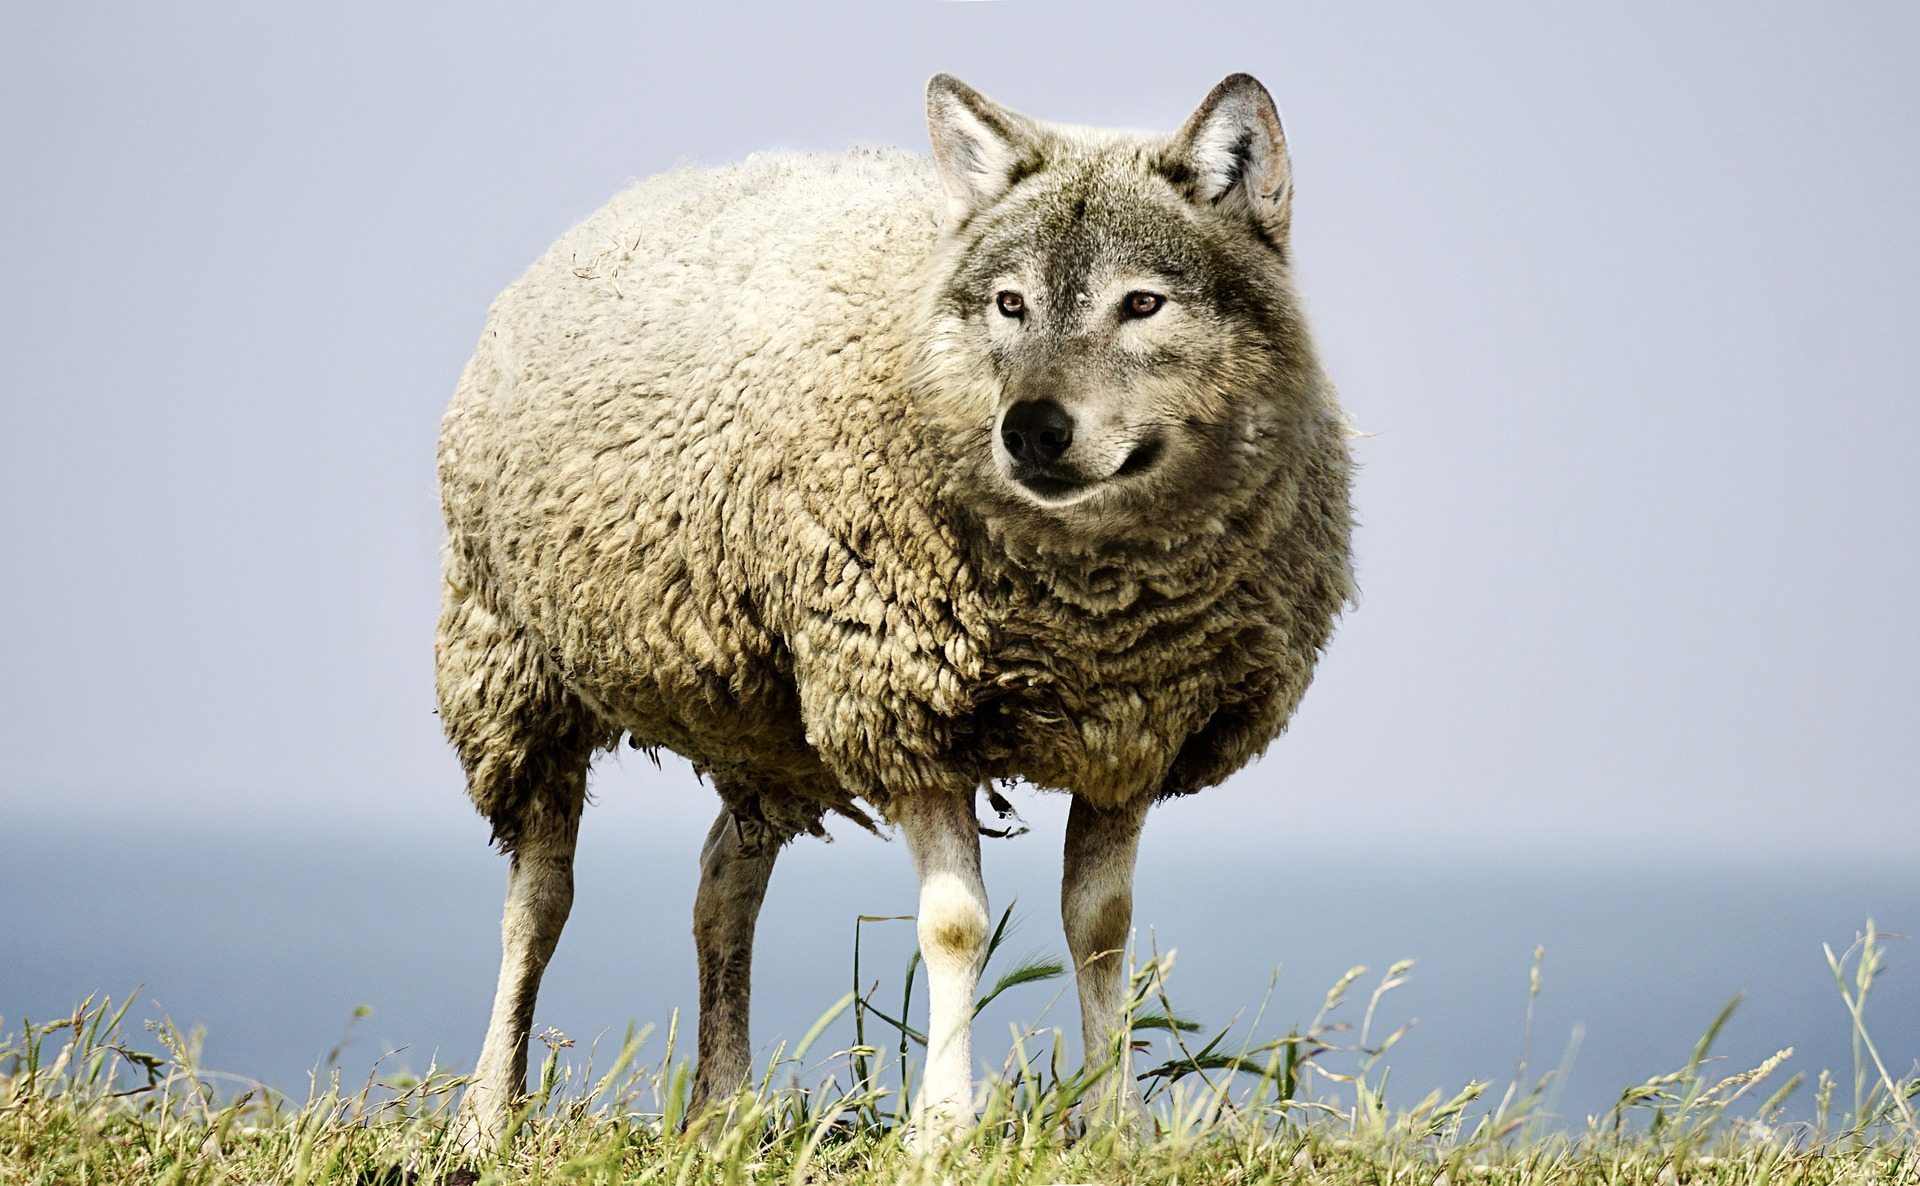 wolf-in-sheeps-clothing-2577813_1920.jpg